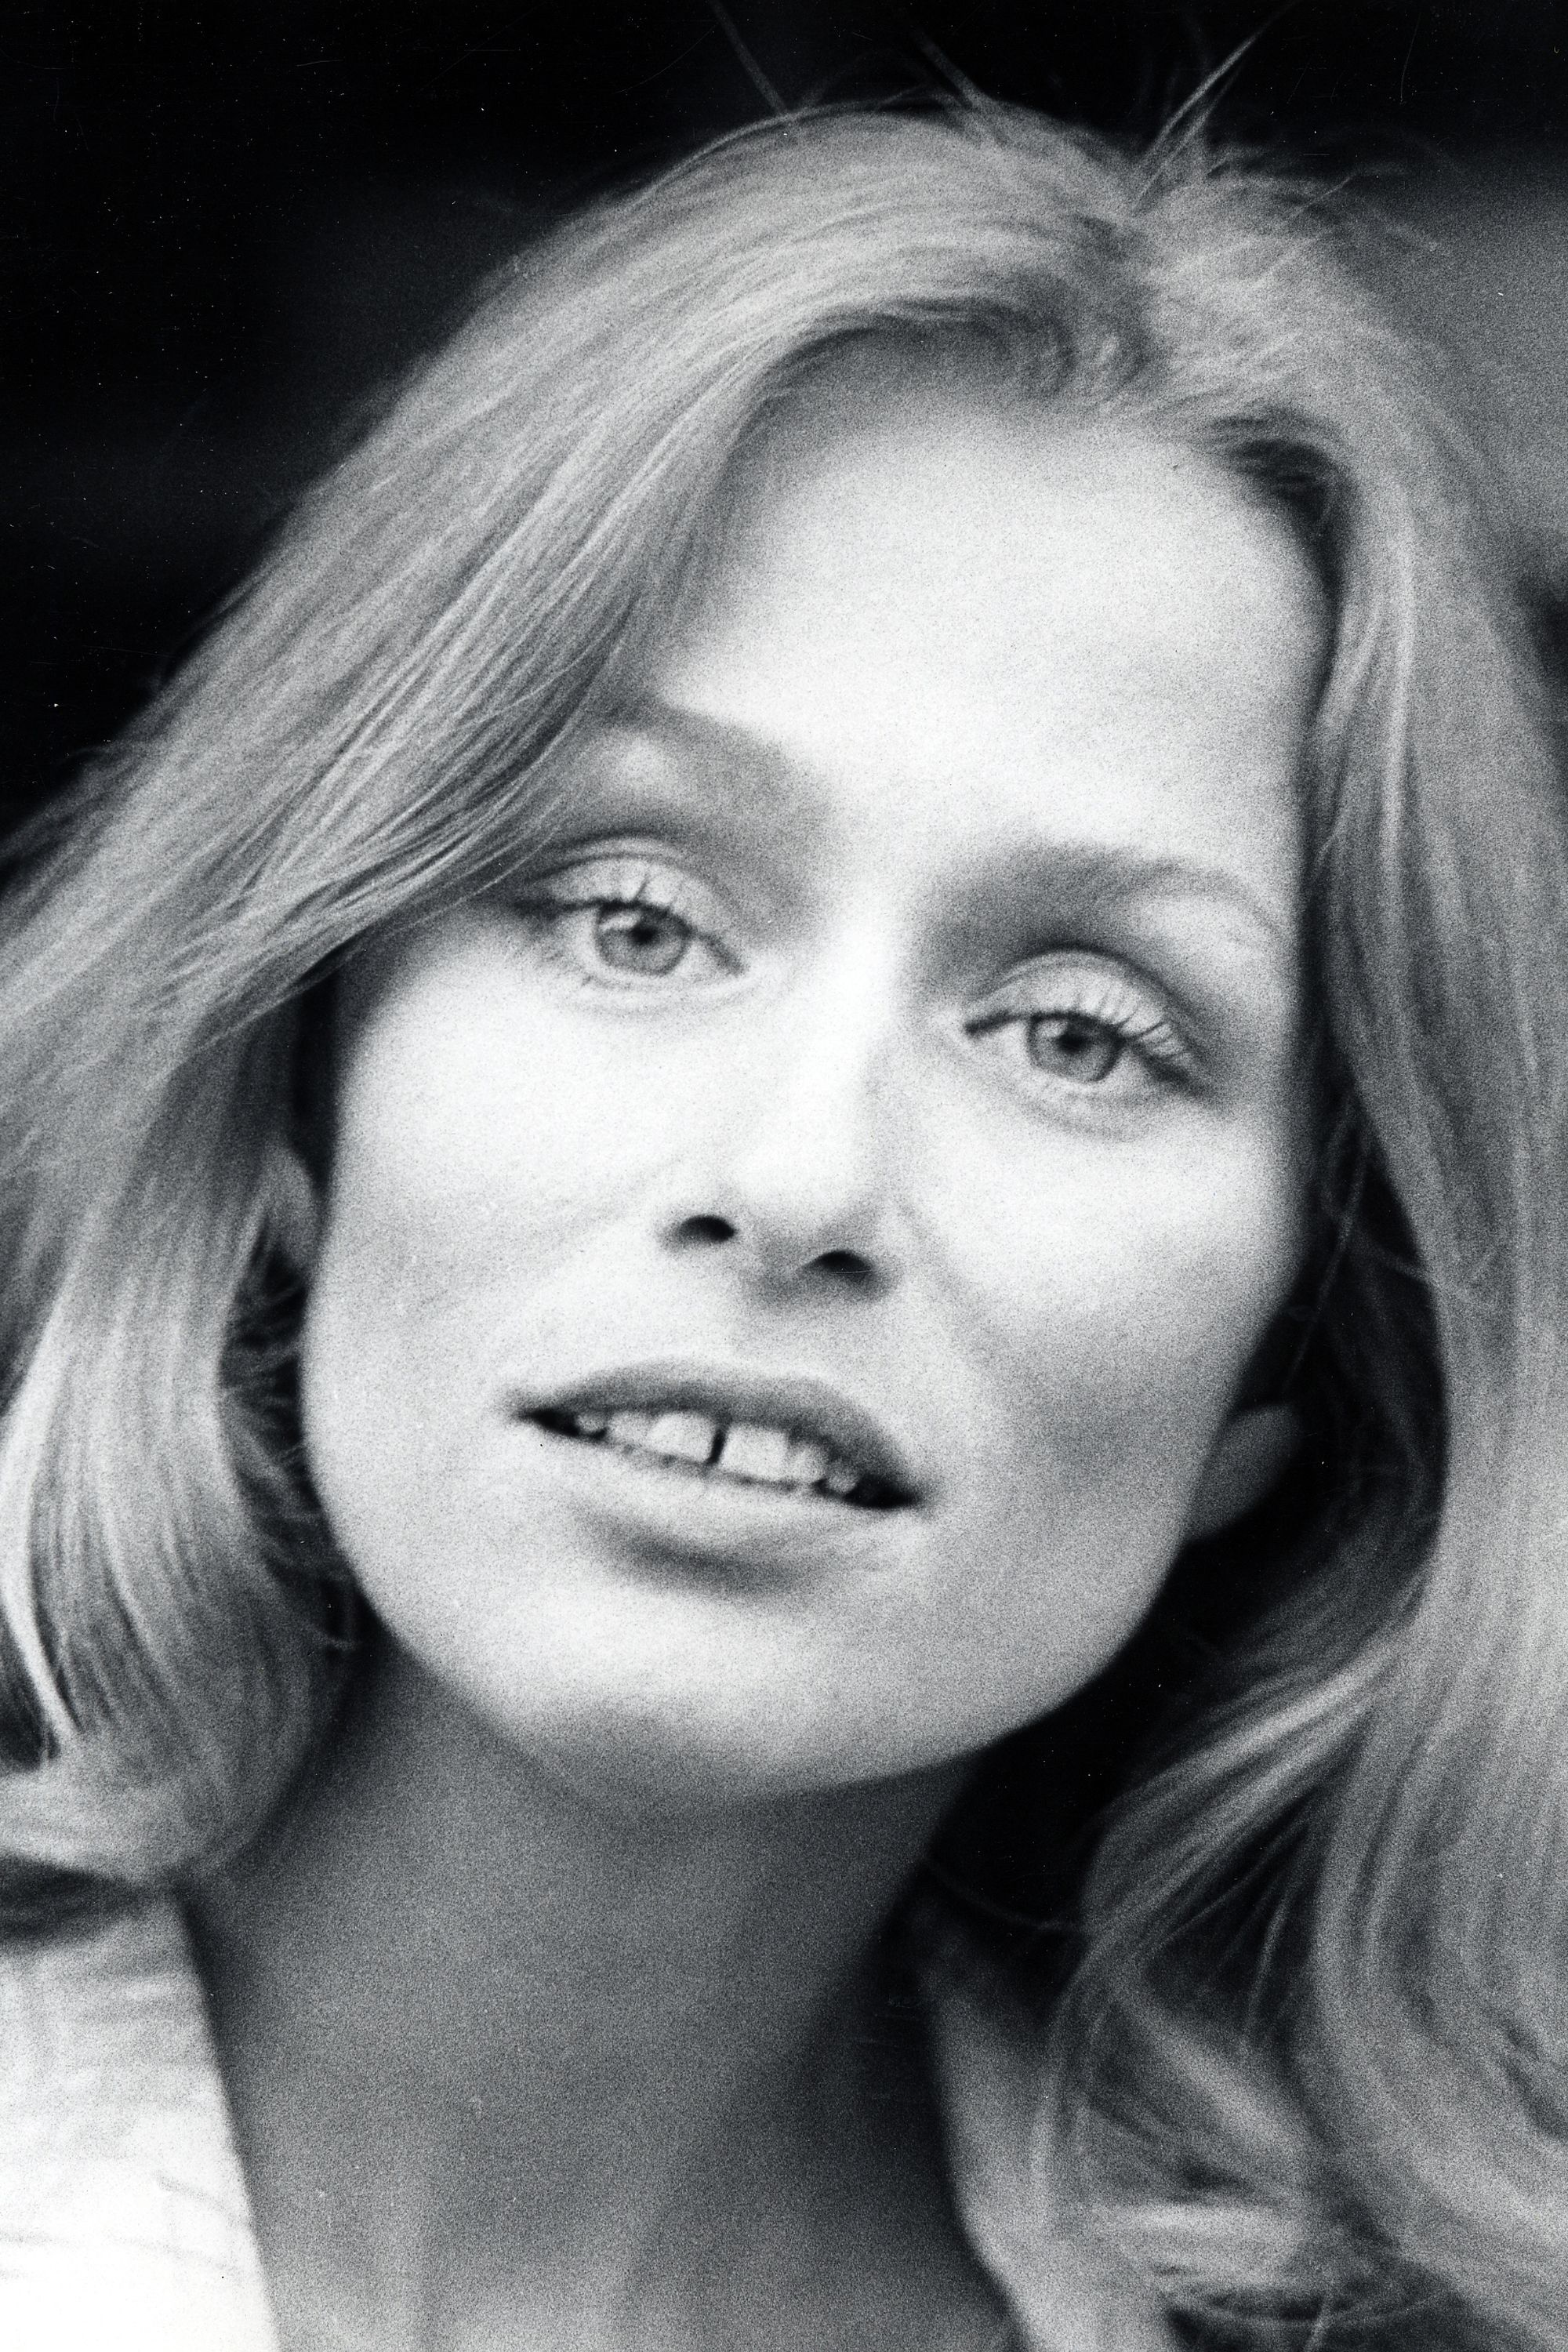 unconventional beauty icons - beautiful women throughout history